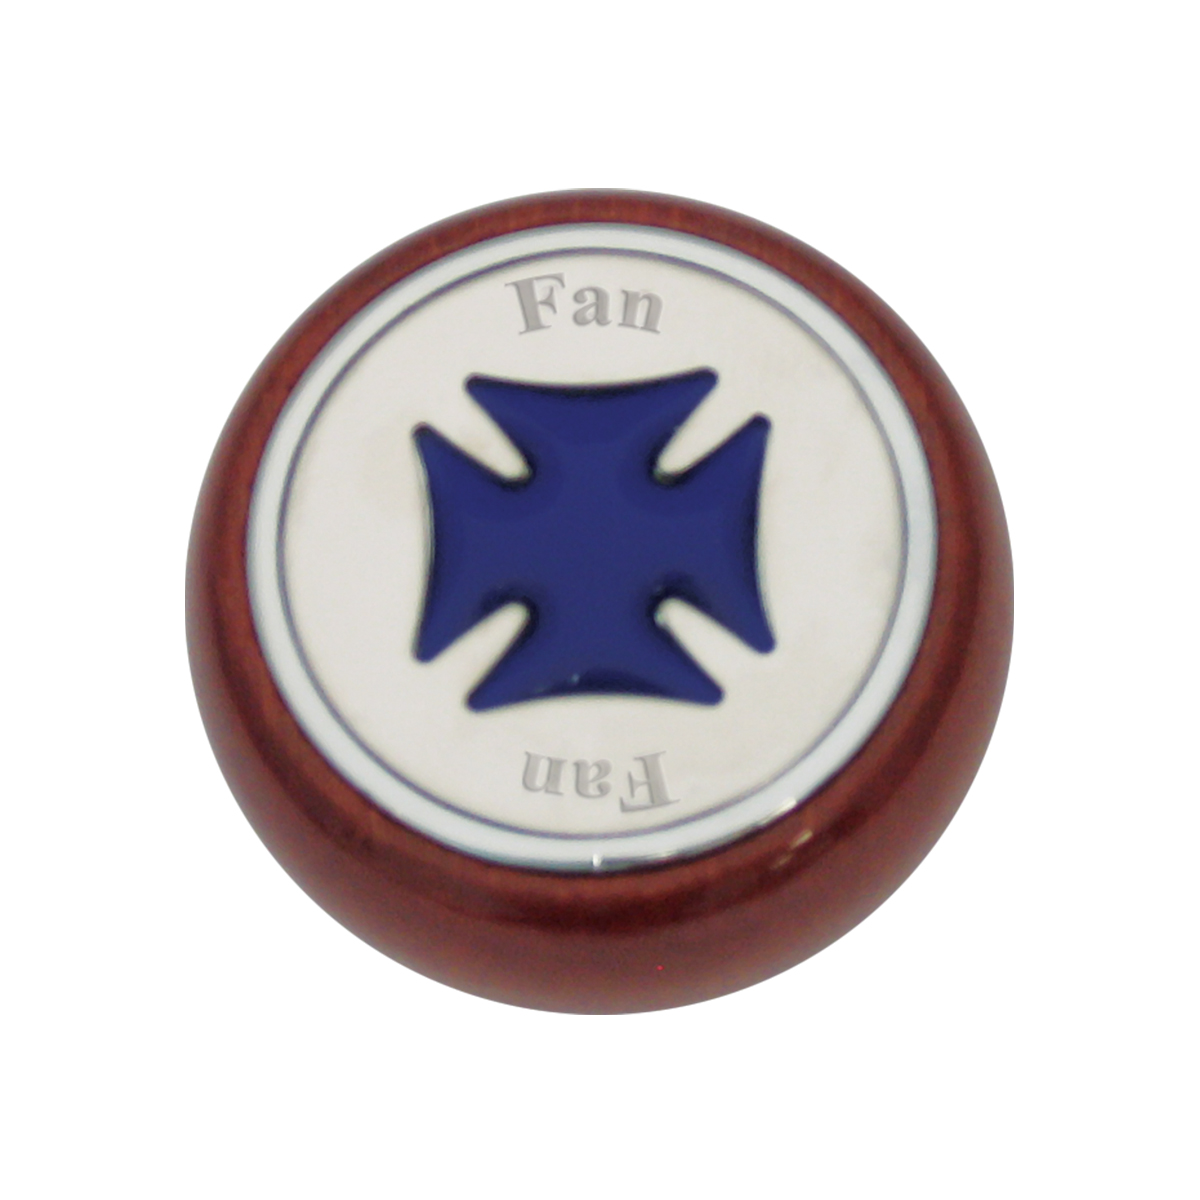 95421 Blue Iron Cross Dashboard Control Knob w/ Fan Script